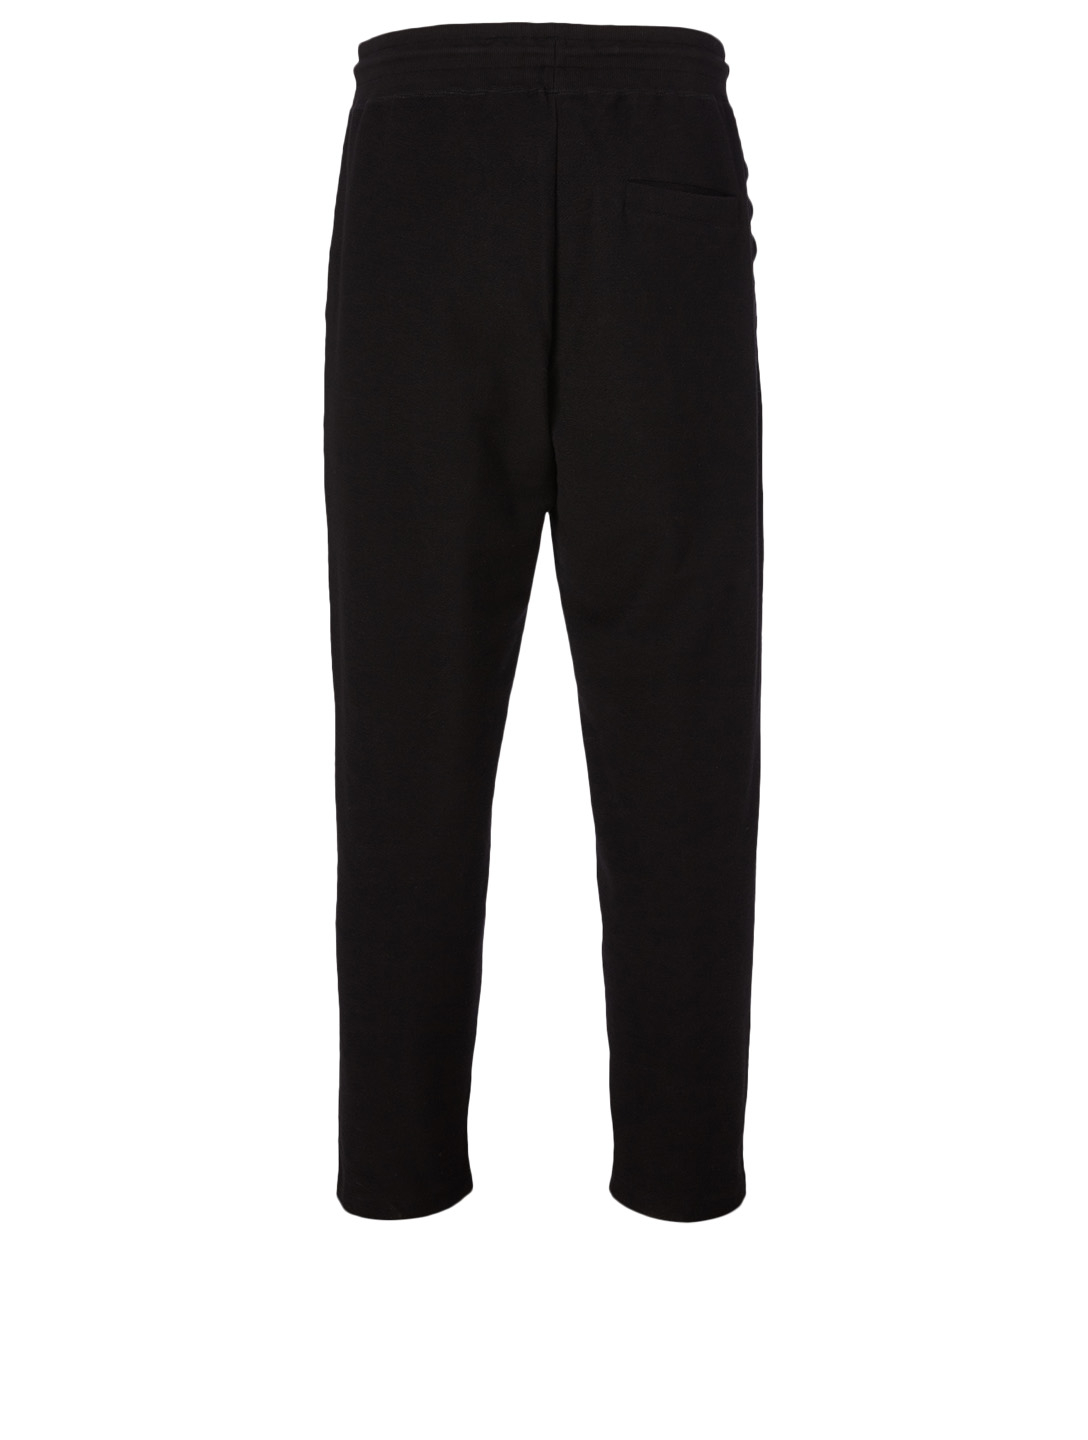 CRAIG GREEN Laced Cotton Pants Men's Black